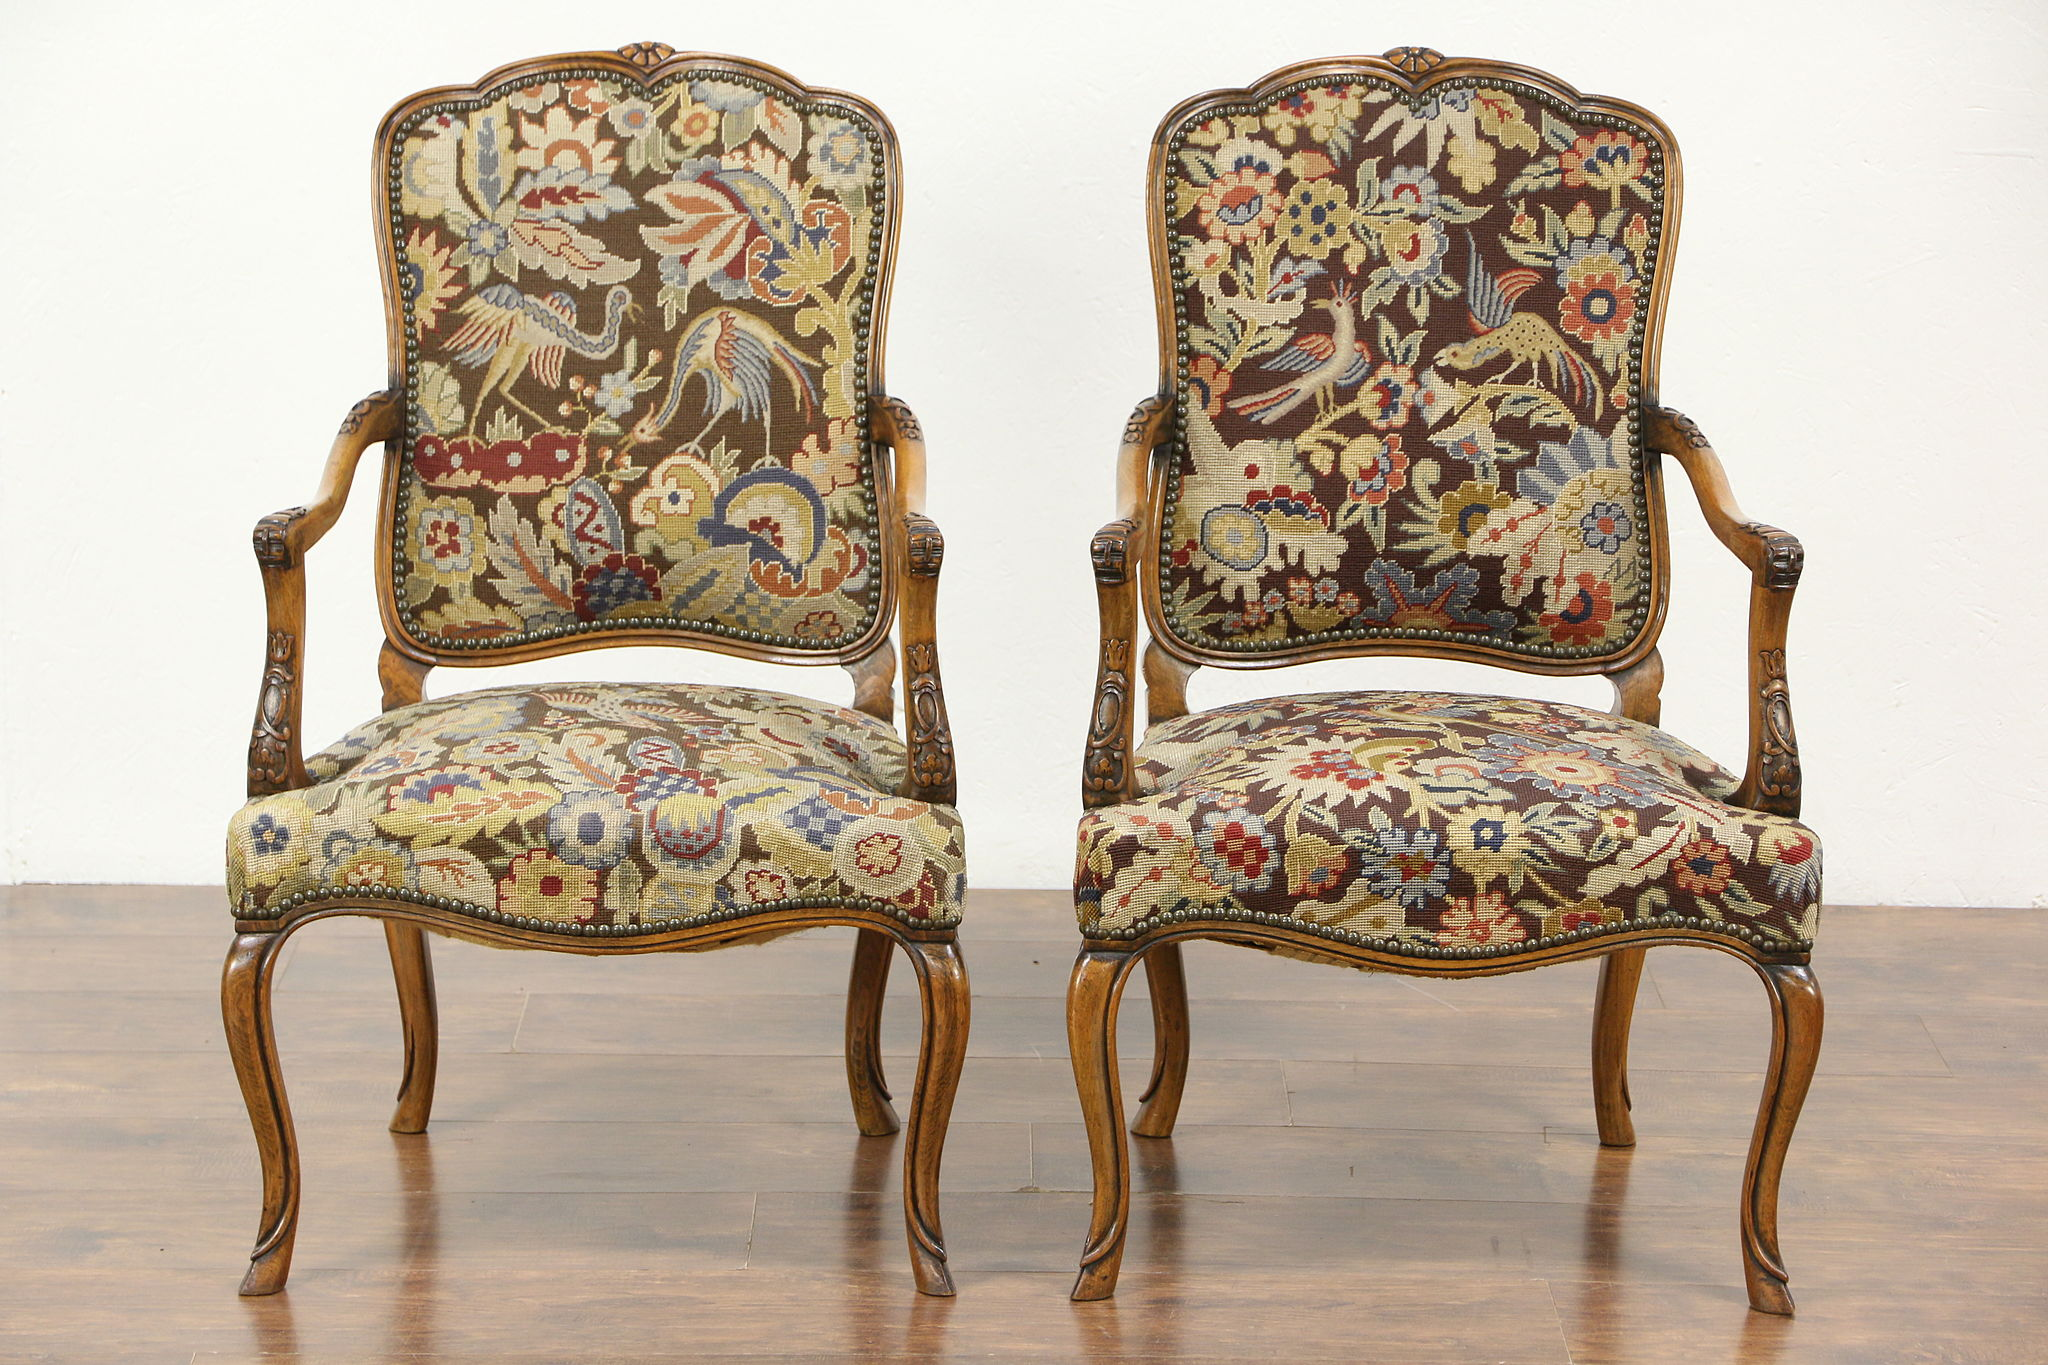 Scandinavian Chairs Pair Of Carved Antique Scandinavian Chairs Needlepoint Petit Point Upholstery